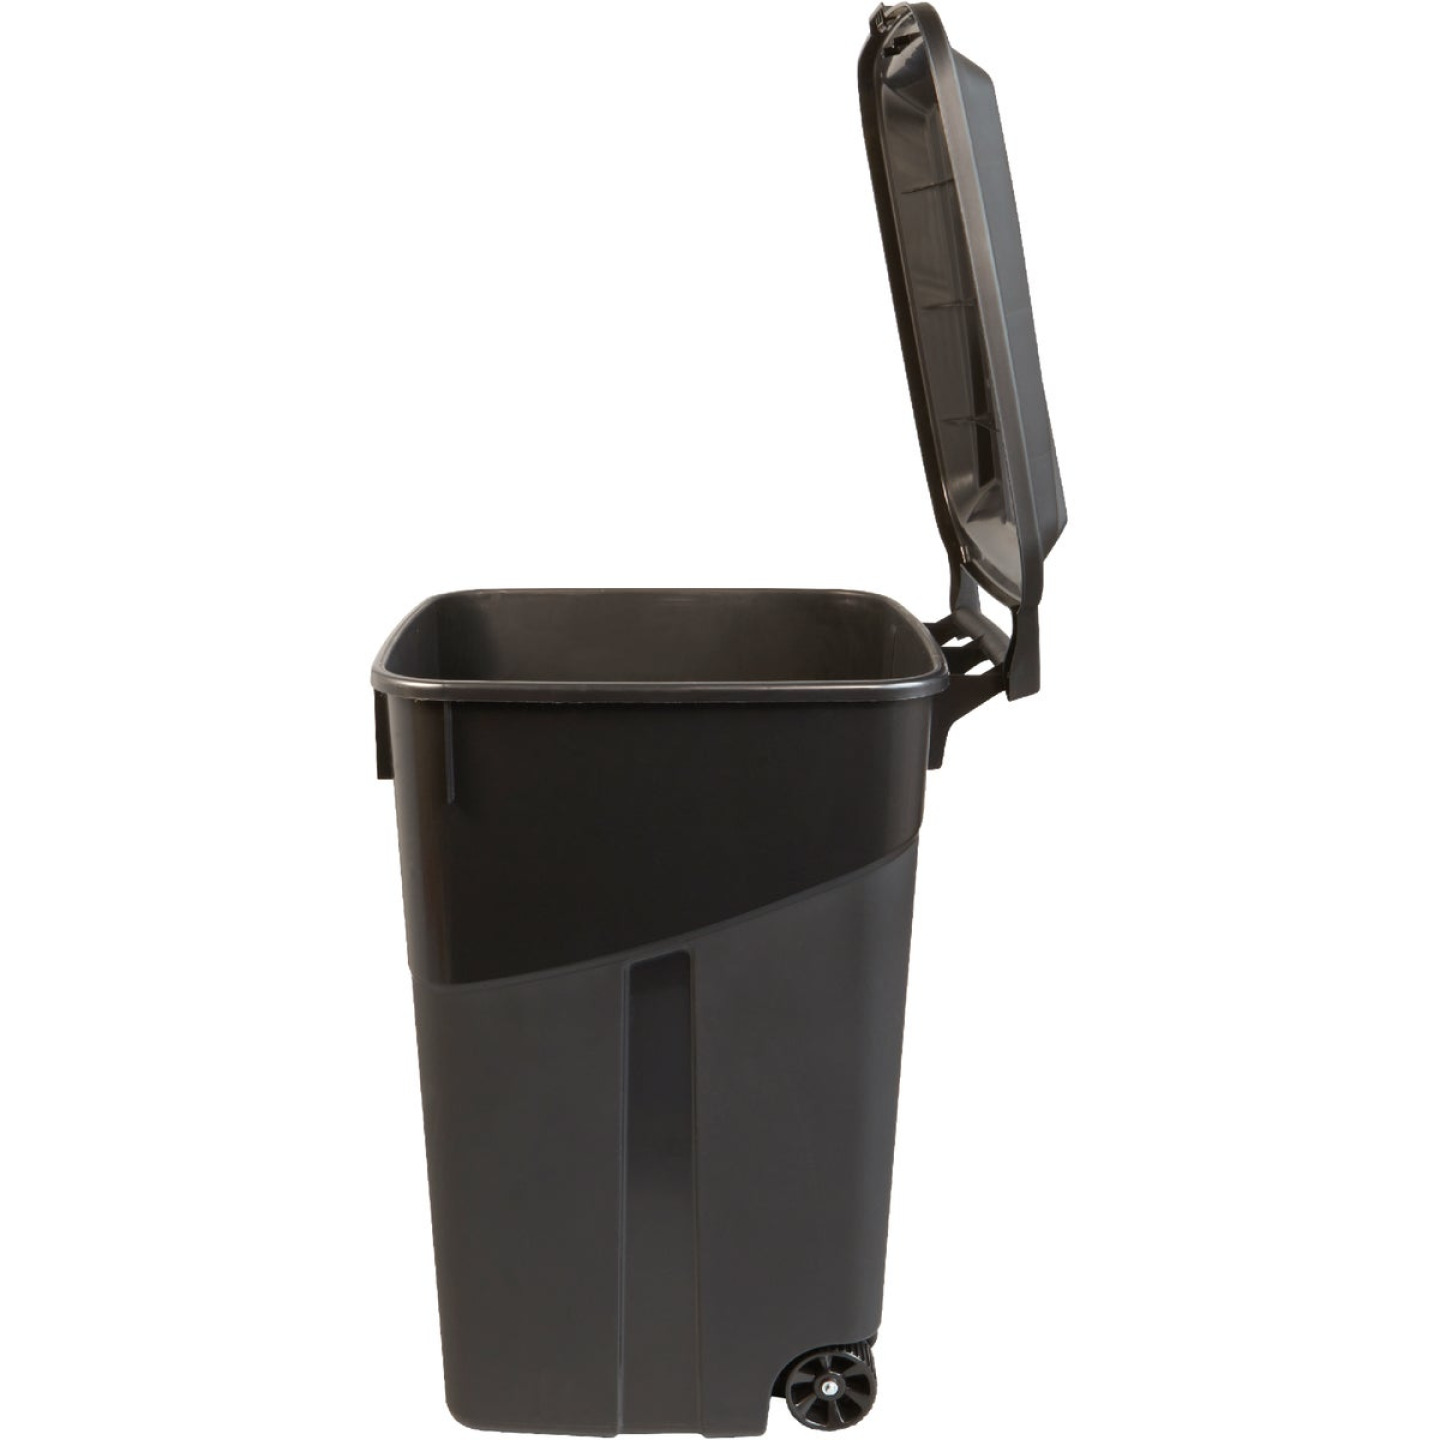 United Solutions Rough and Rugged 45 Gal. Wheeled Trash Can with Attached Lid Image 5